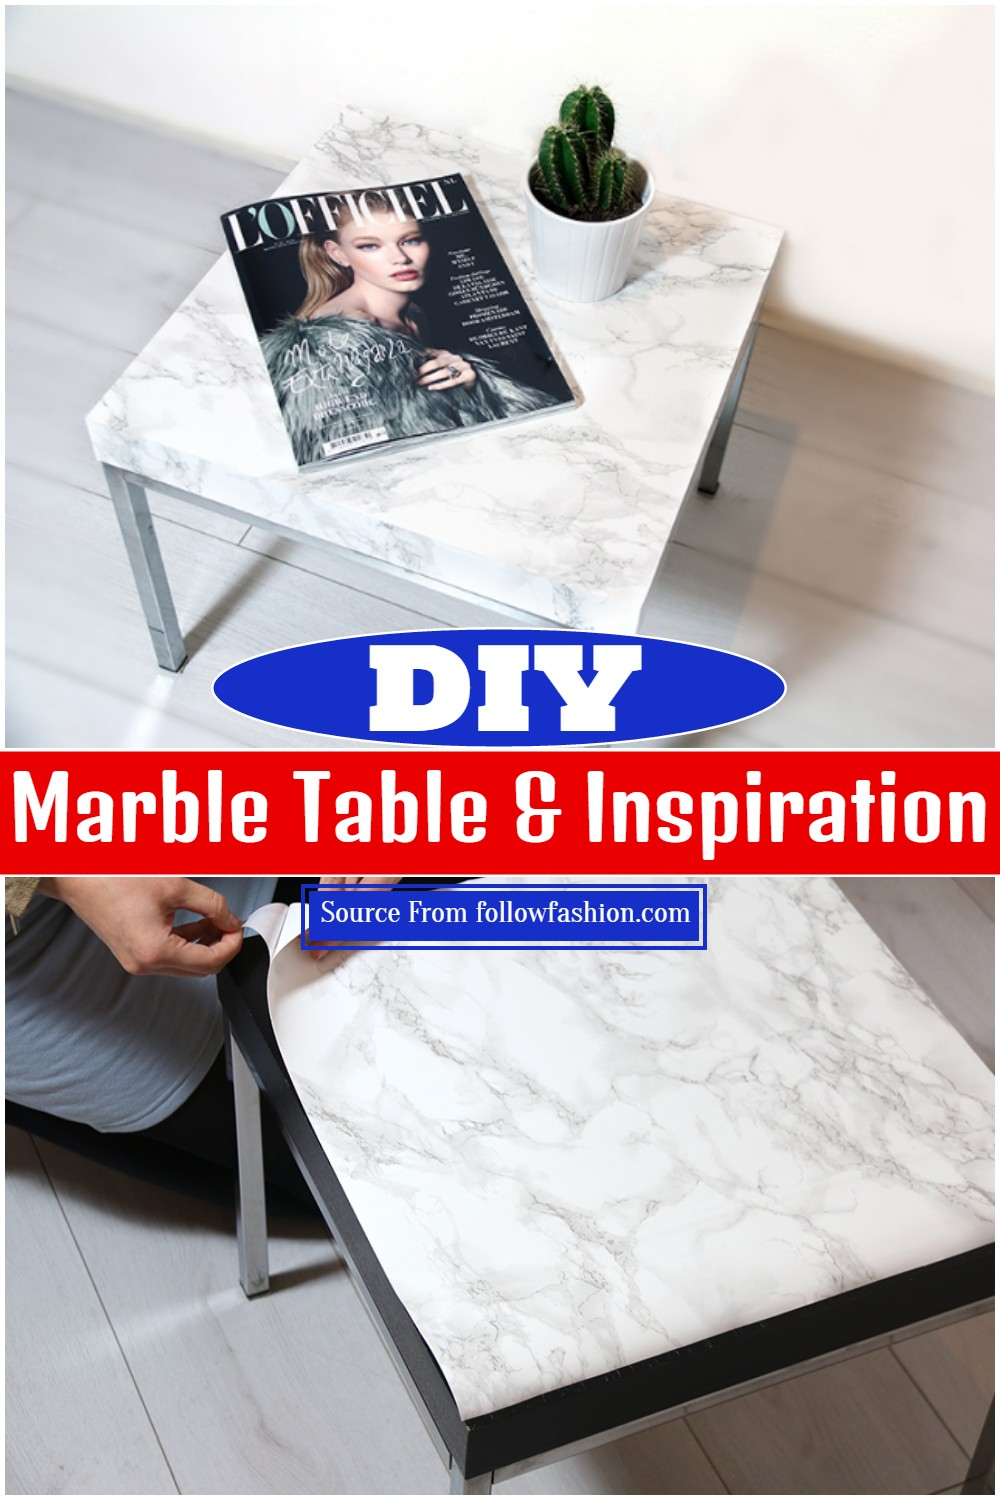 DIY Marble Table & Inspiration